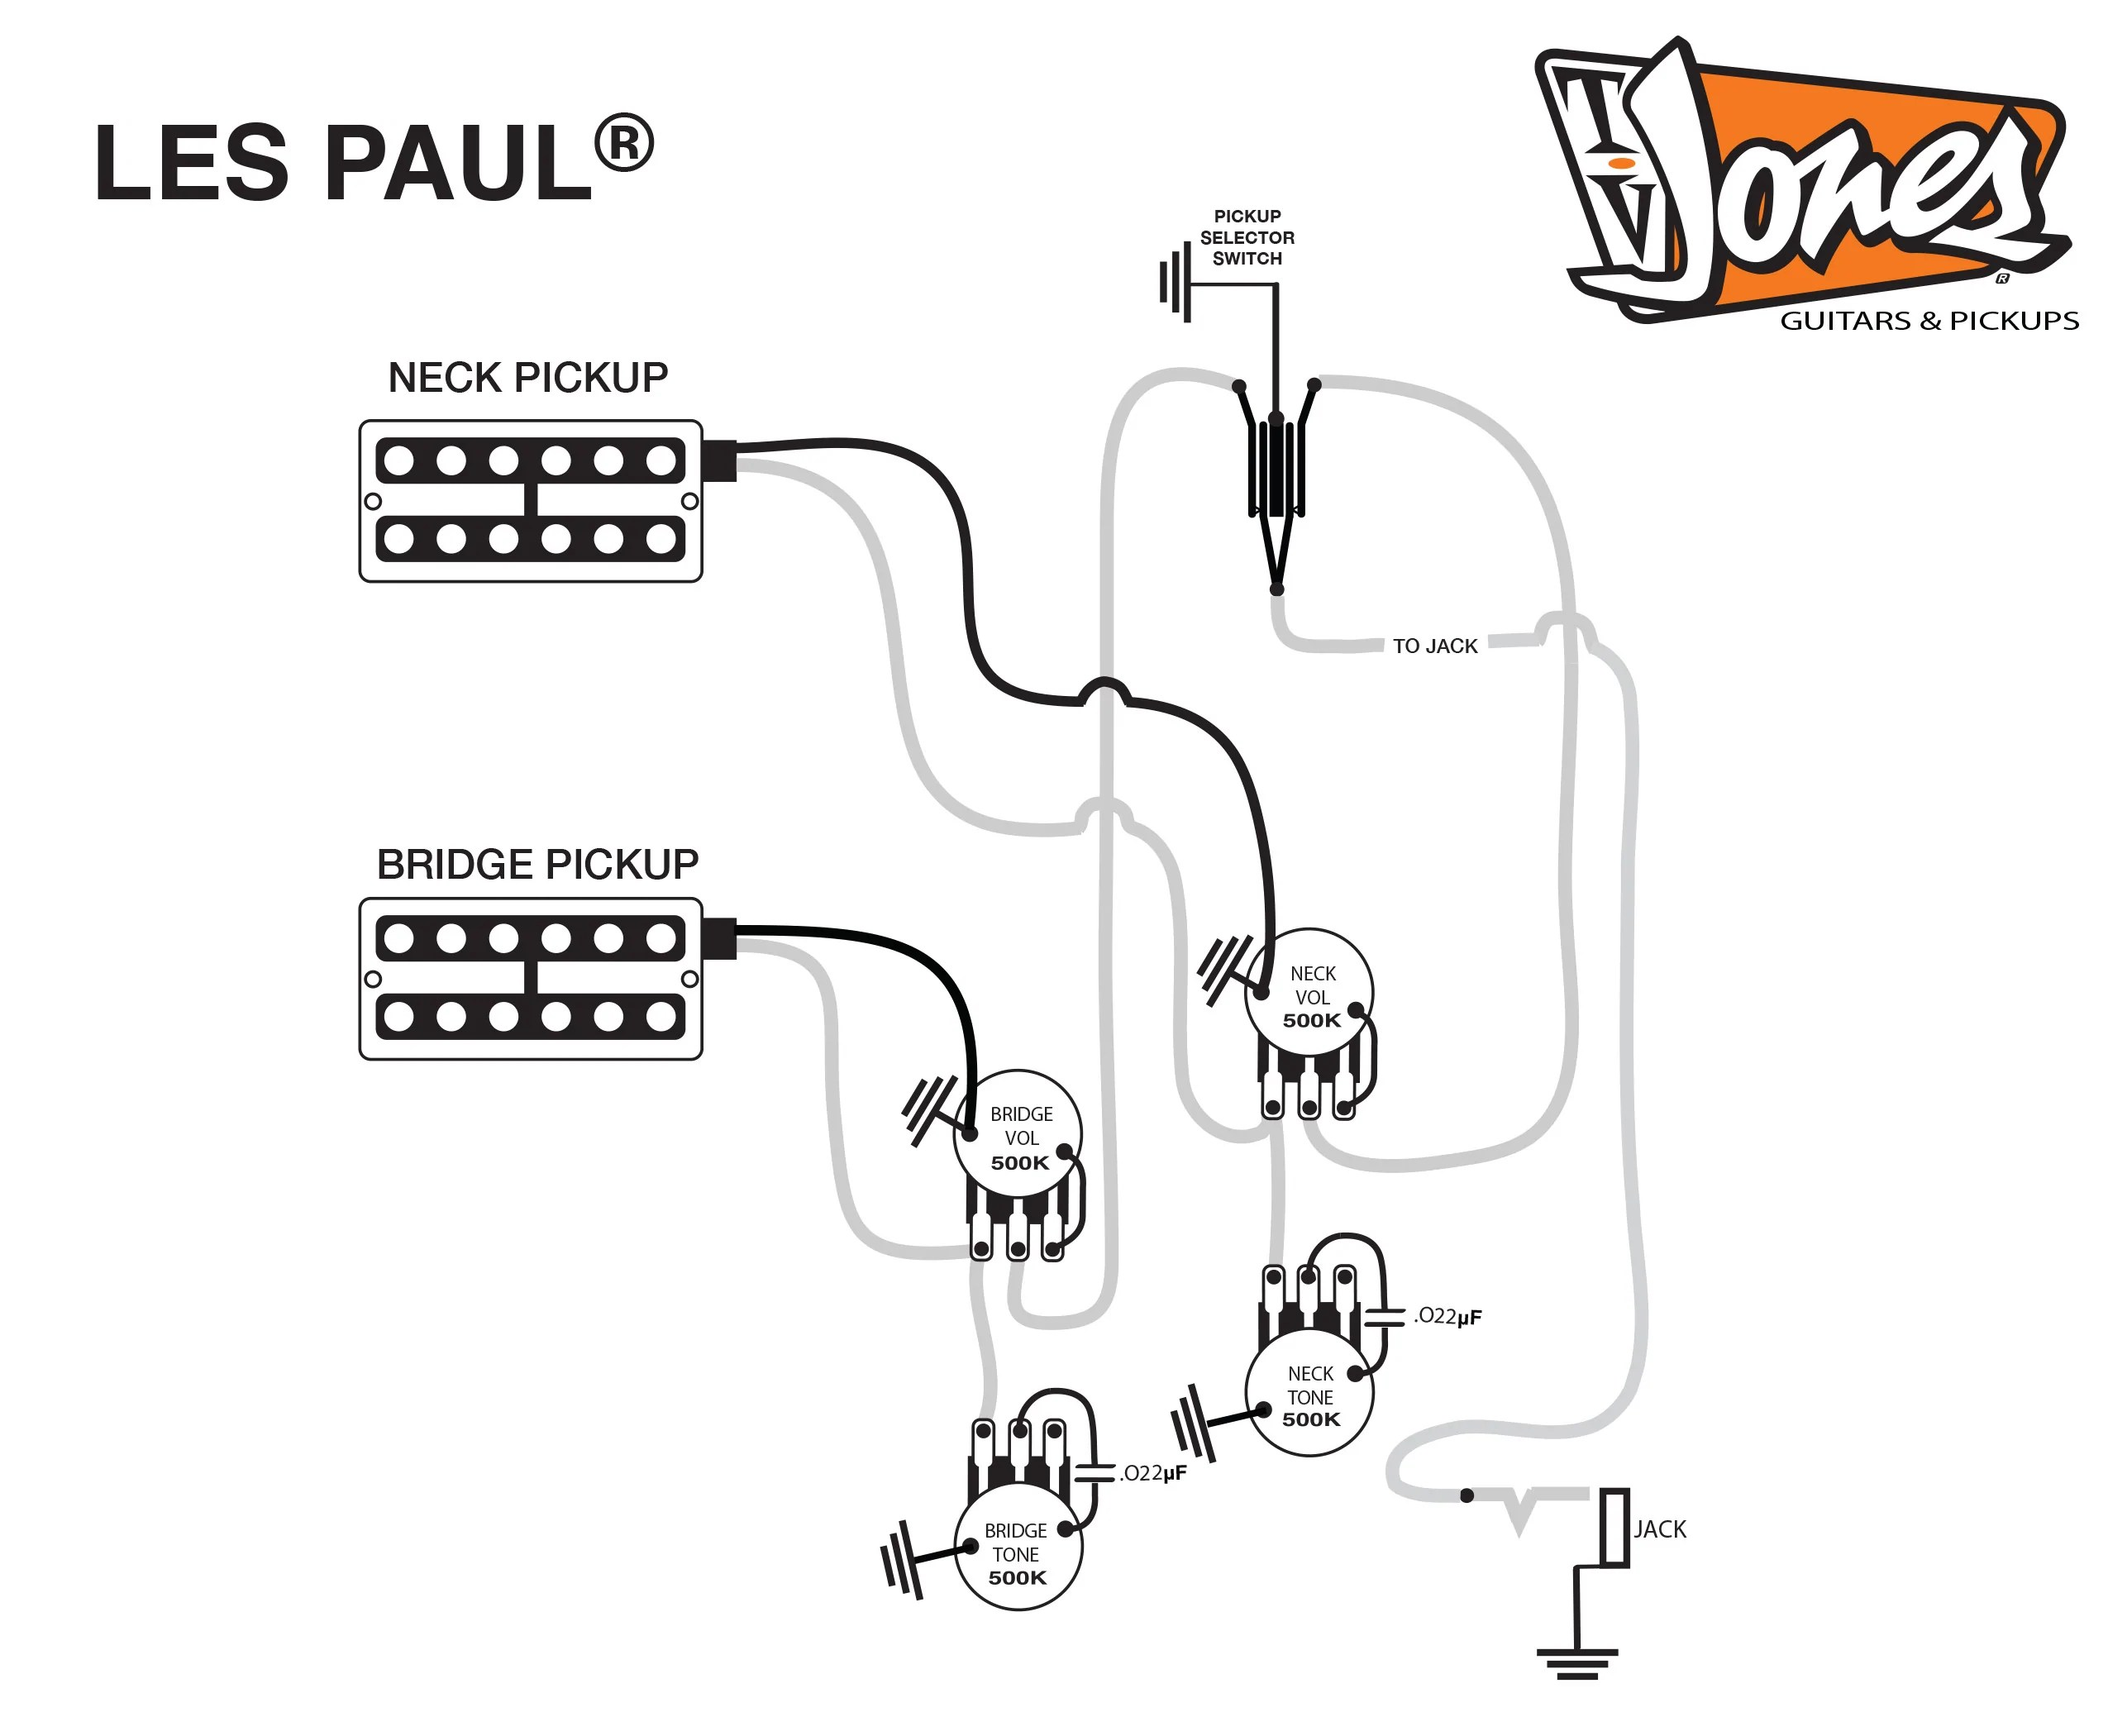 gretsch wiring diagrams wiring diagram blogs vintage guitar wiring diagrams gretsch electric guitar wiring diagram [ 2550 x 2100 Pixel ]